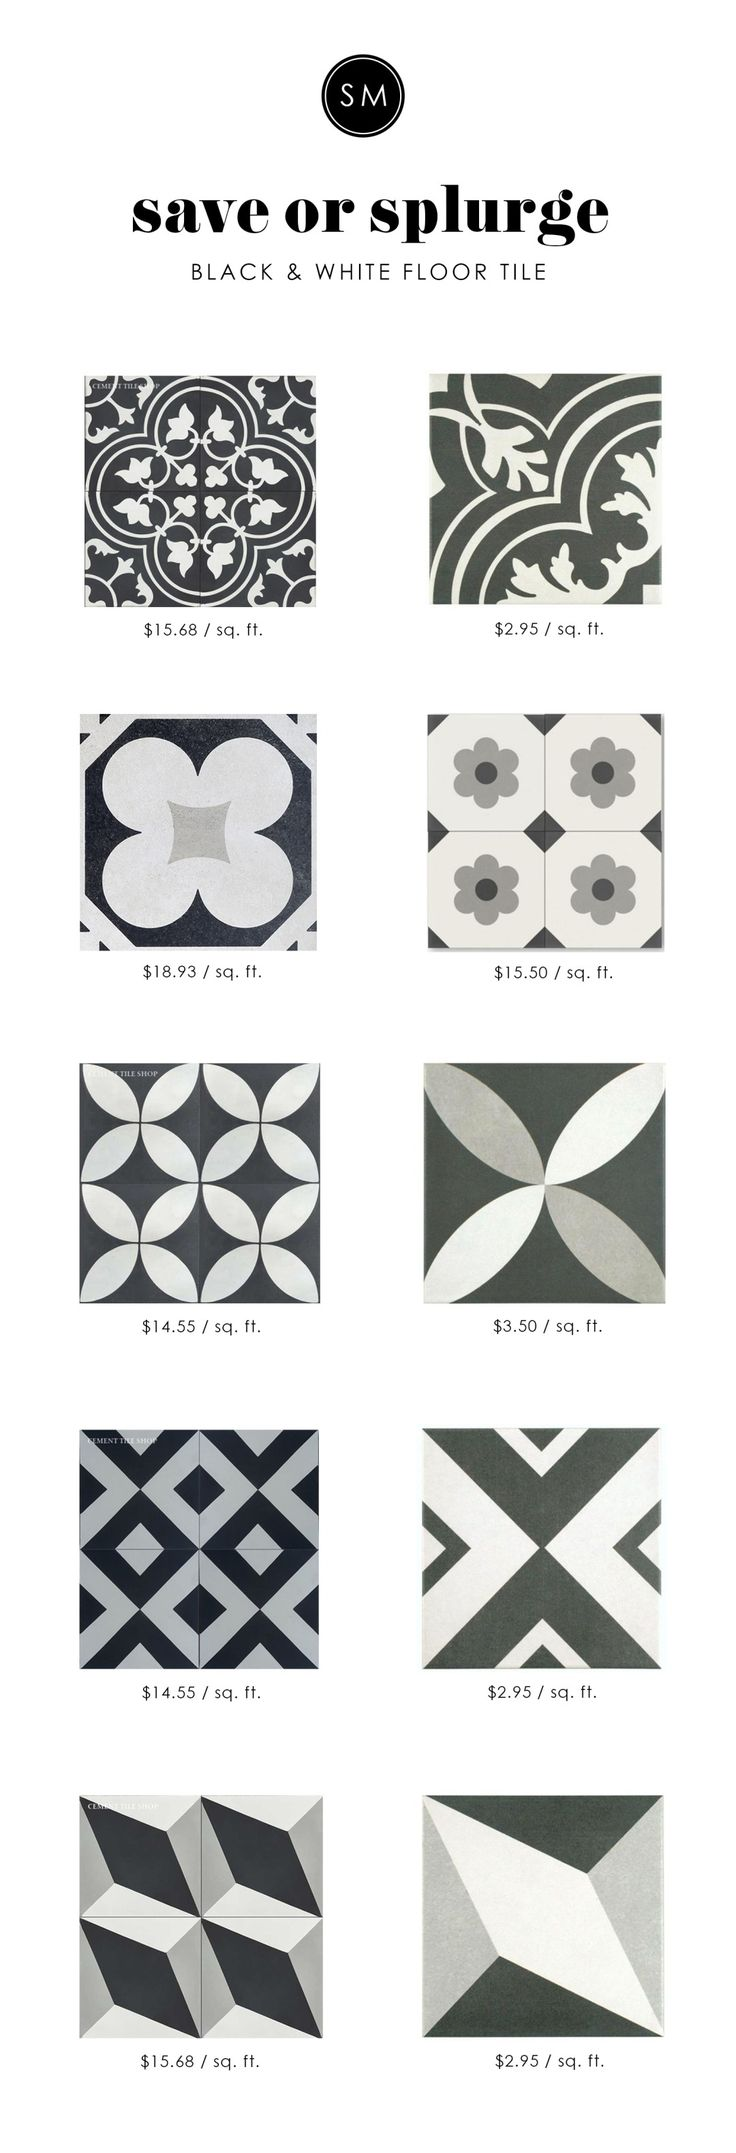 black and white tile floor. Save or Splurge  Black White Floor Tile Best 25 and white tiles ideas on Pinterest